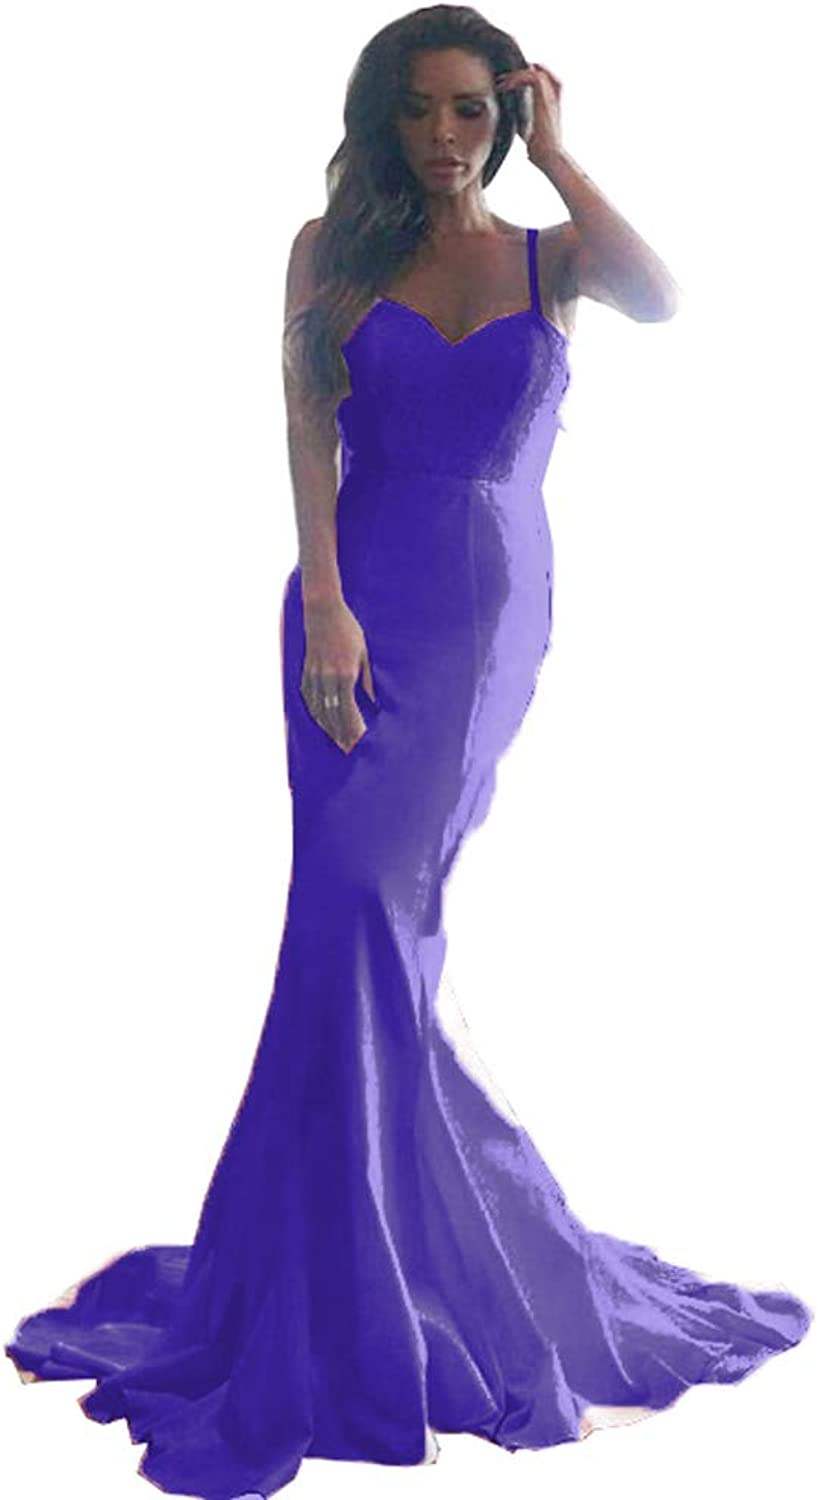 MariRobe Women's Mermaid Evening Dresses Bridesmaid Dress Sequin Backless Formal Party Dress Prom Gown